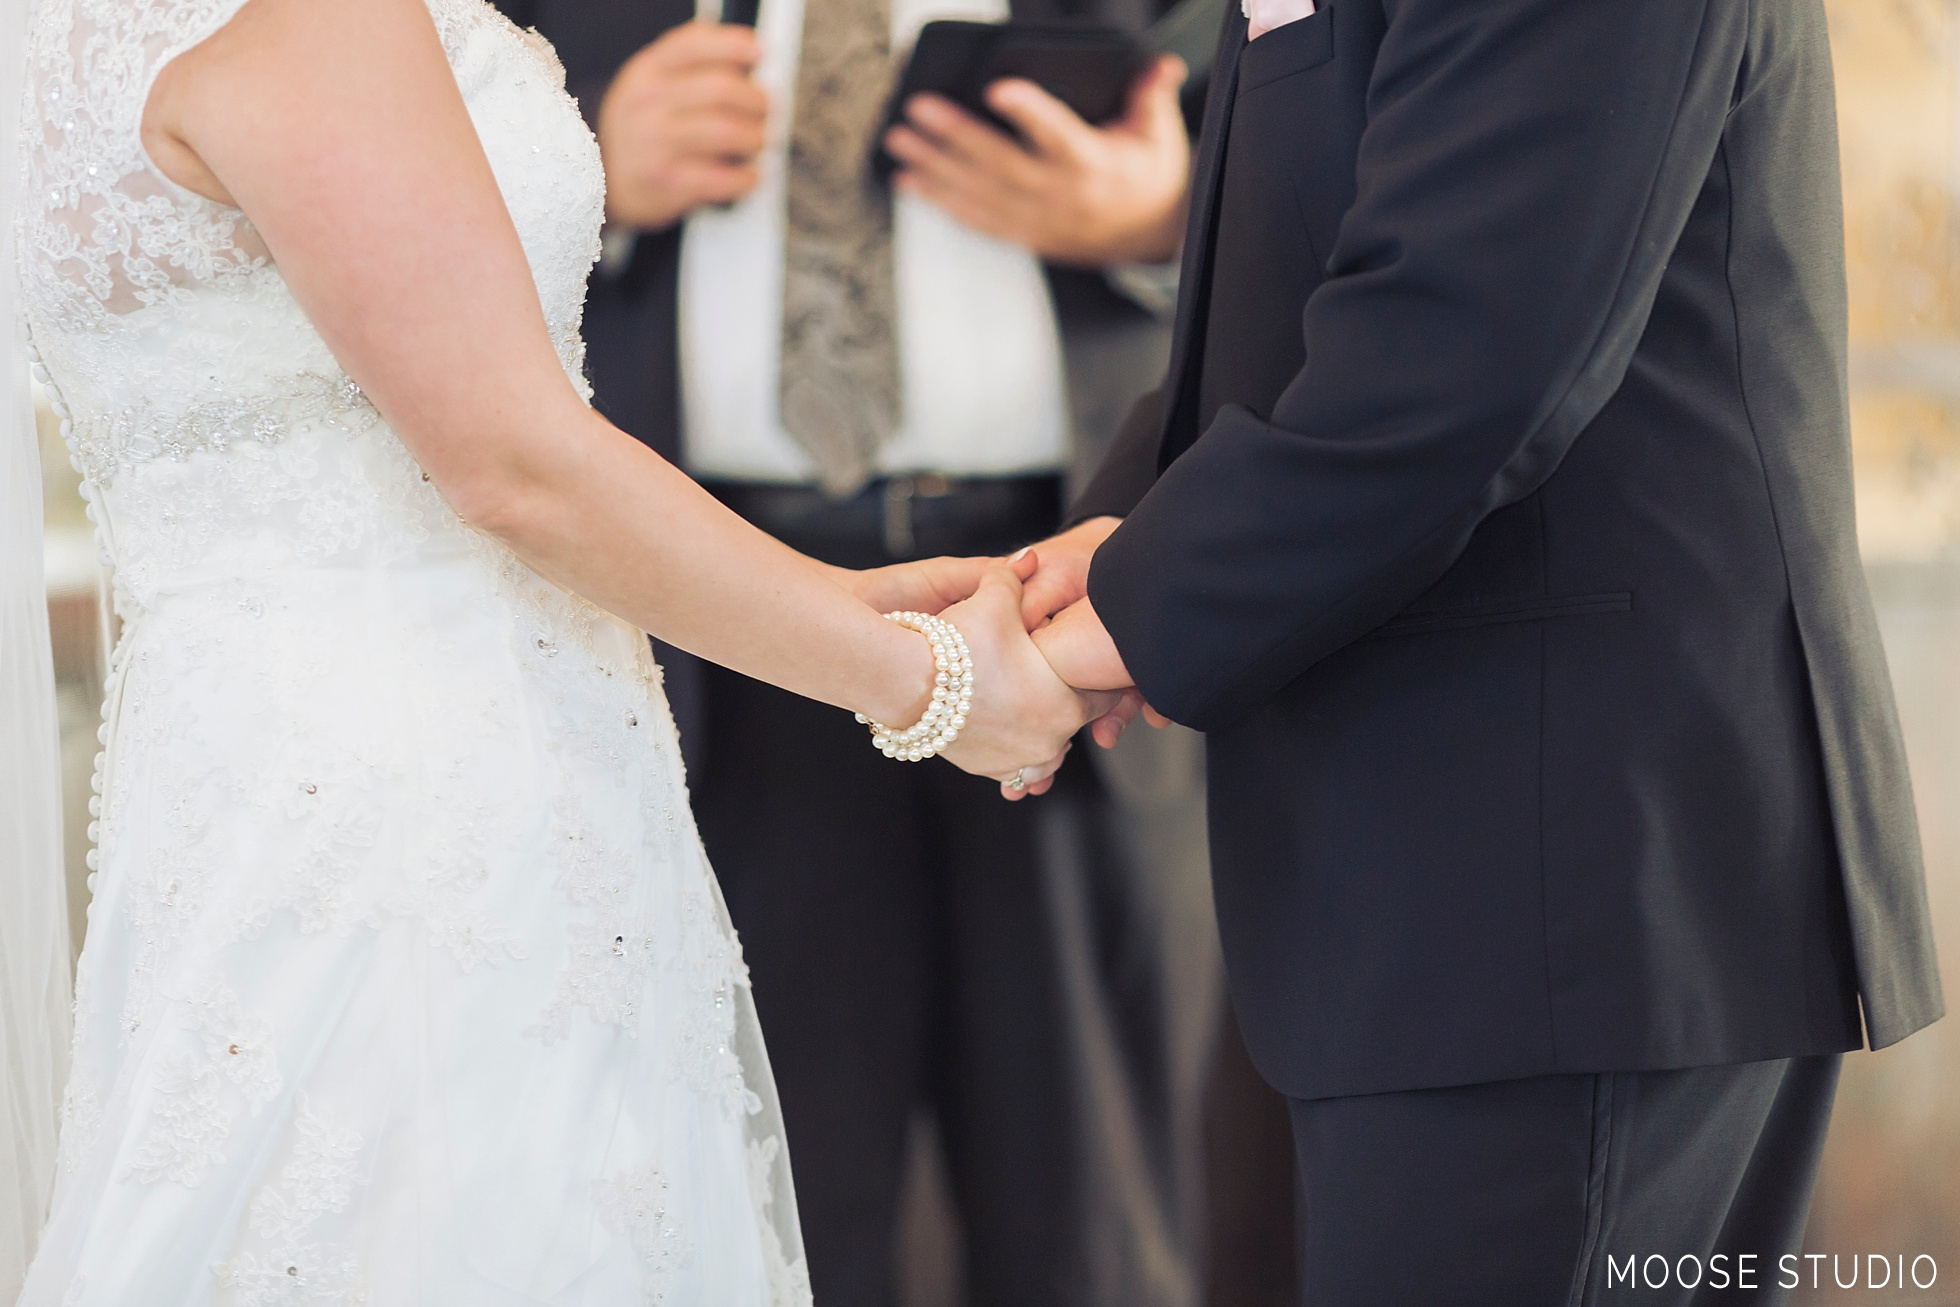 How To Find The Perfect Wedding Officiant